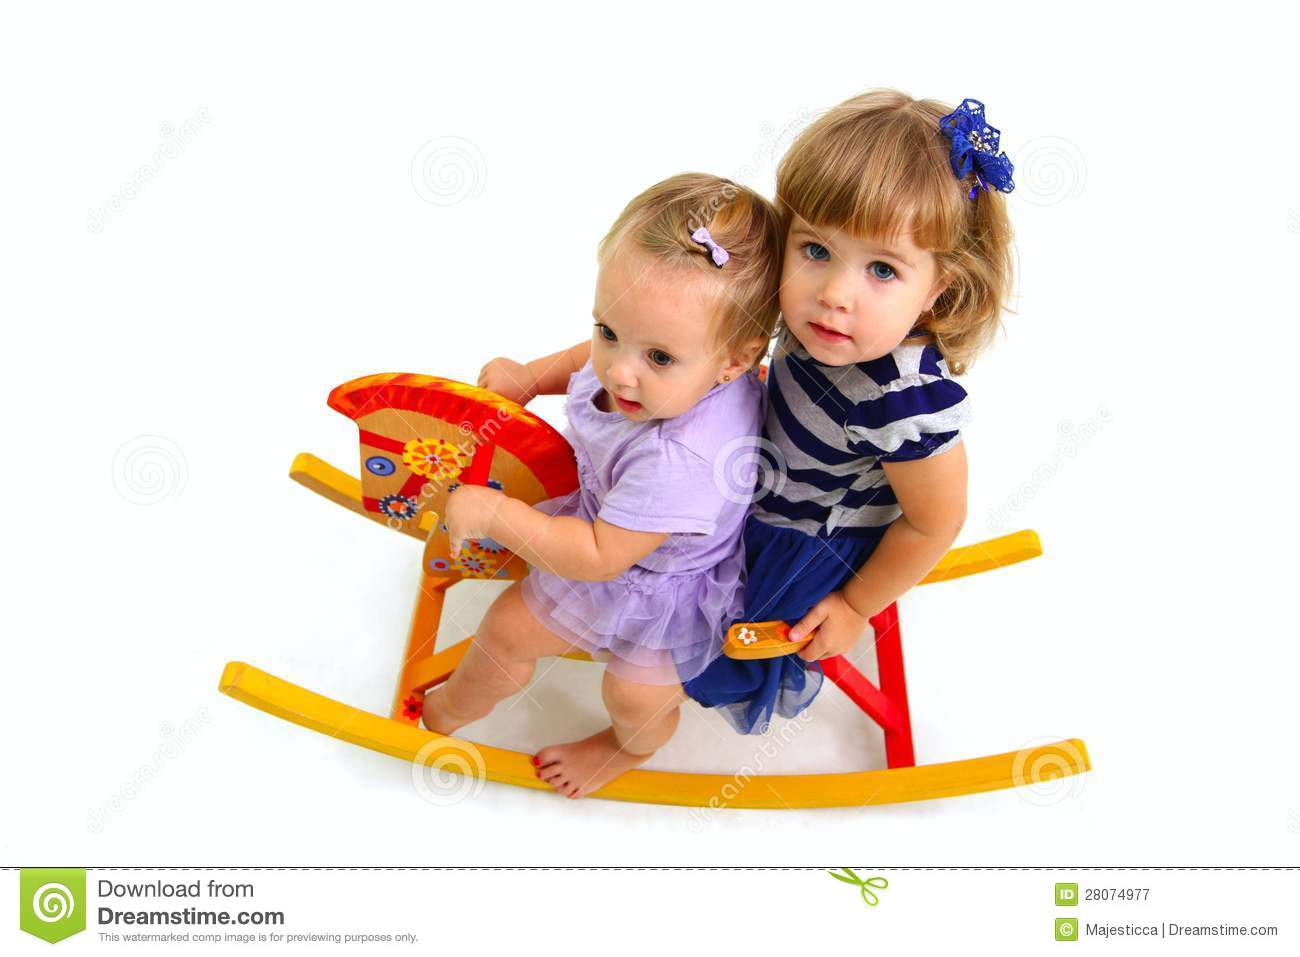 ... Free Stock Photography: Two cute babies riding on a toy wooden horse